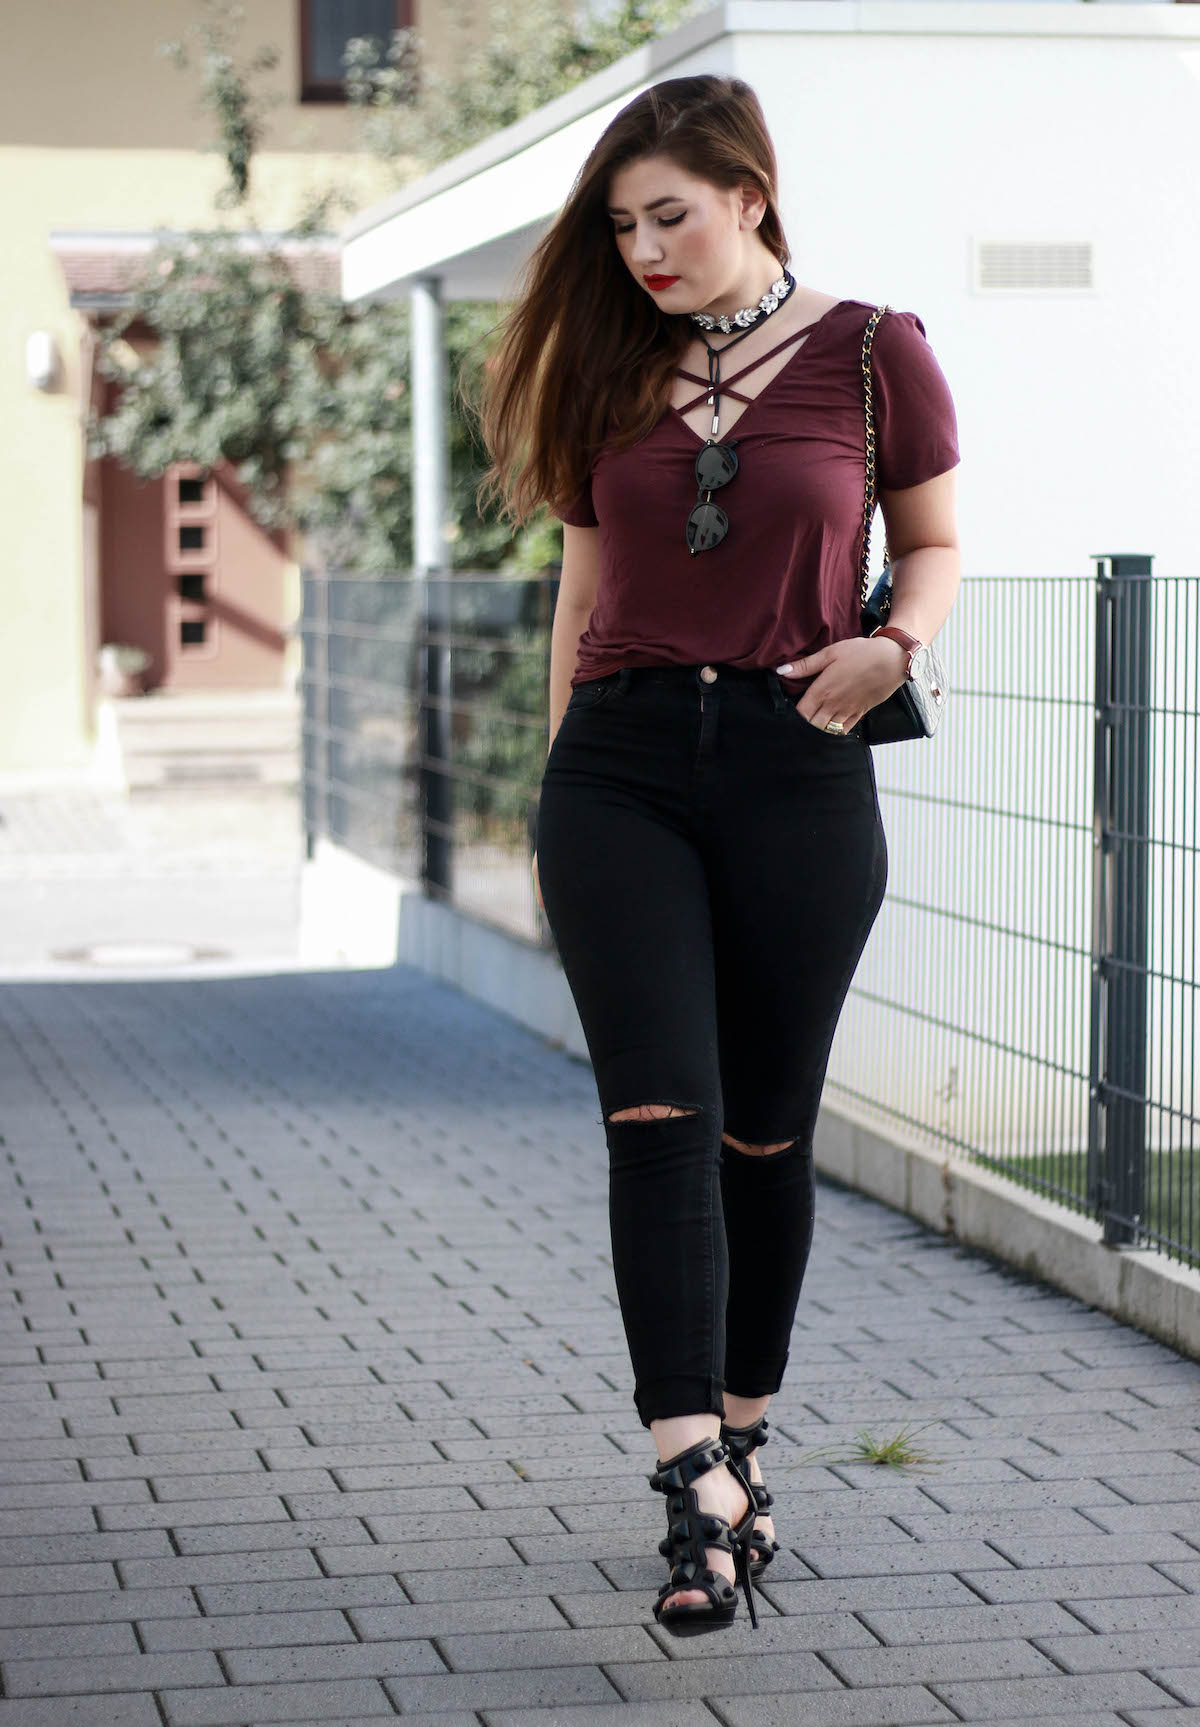 sara-bow-fashion-blogger-asos-jeans-burberry-heels-zara-schmuck